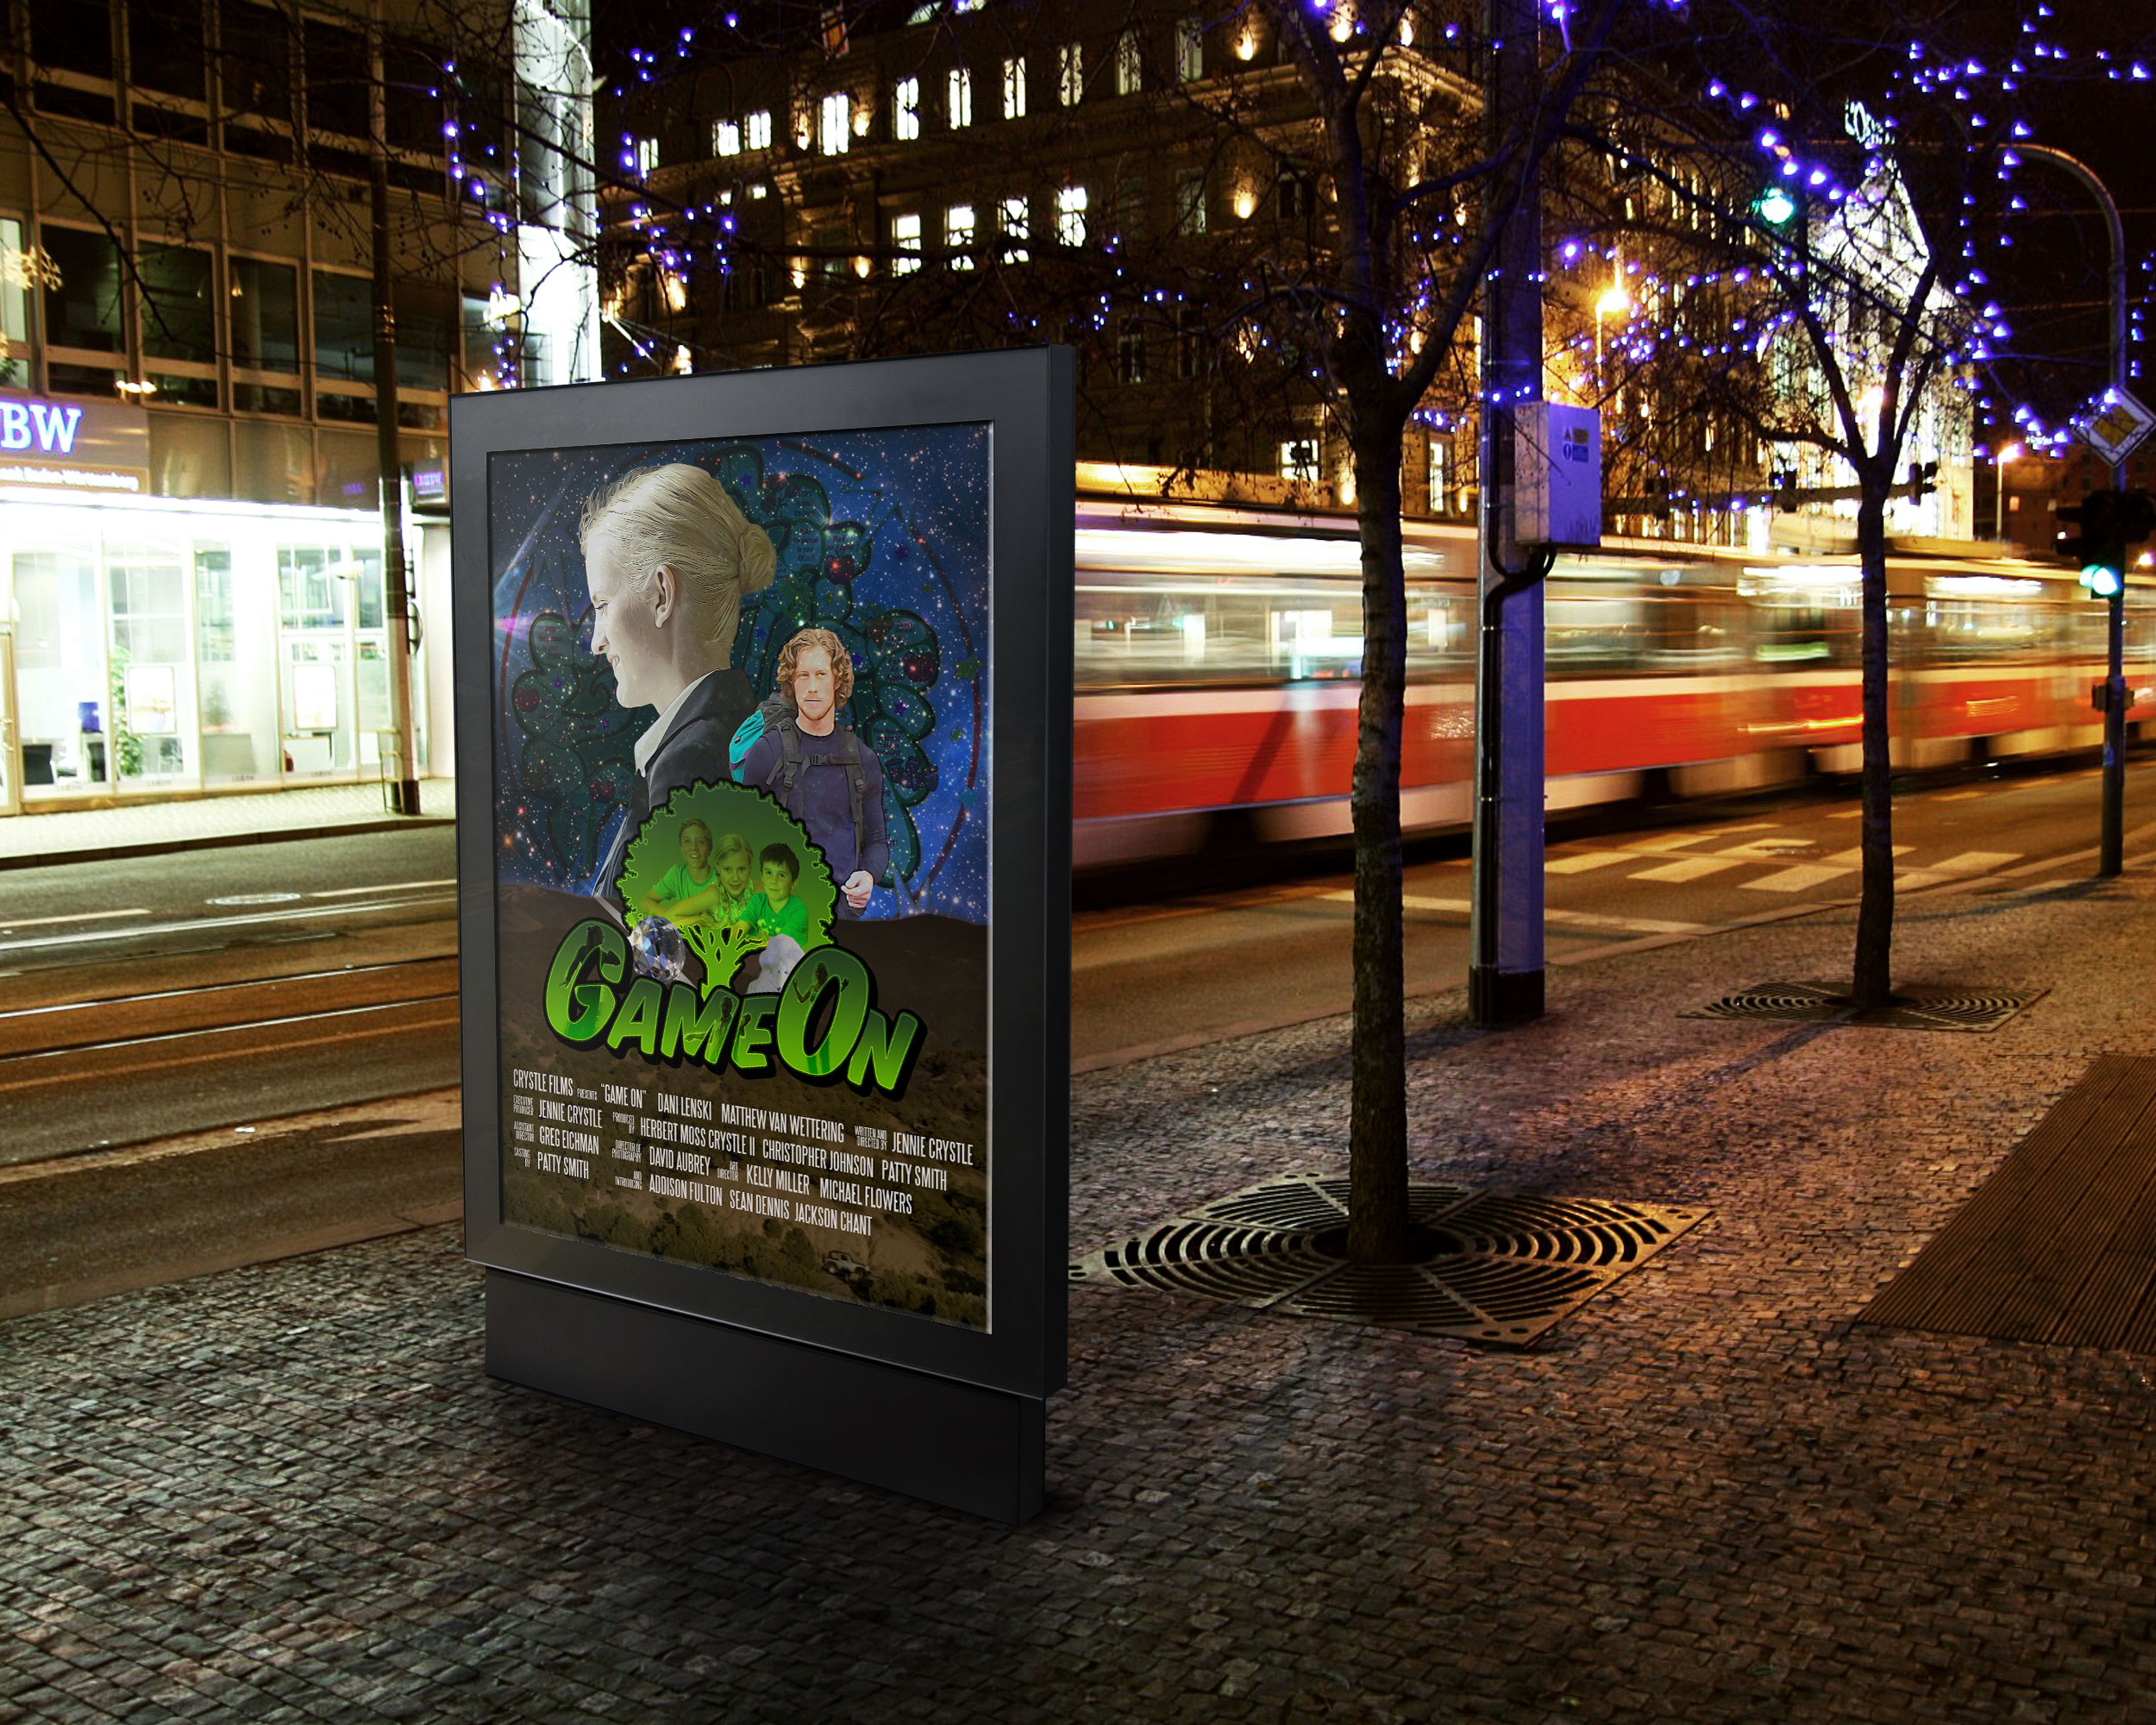 Game On Bus Stop